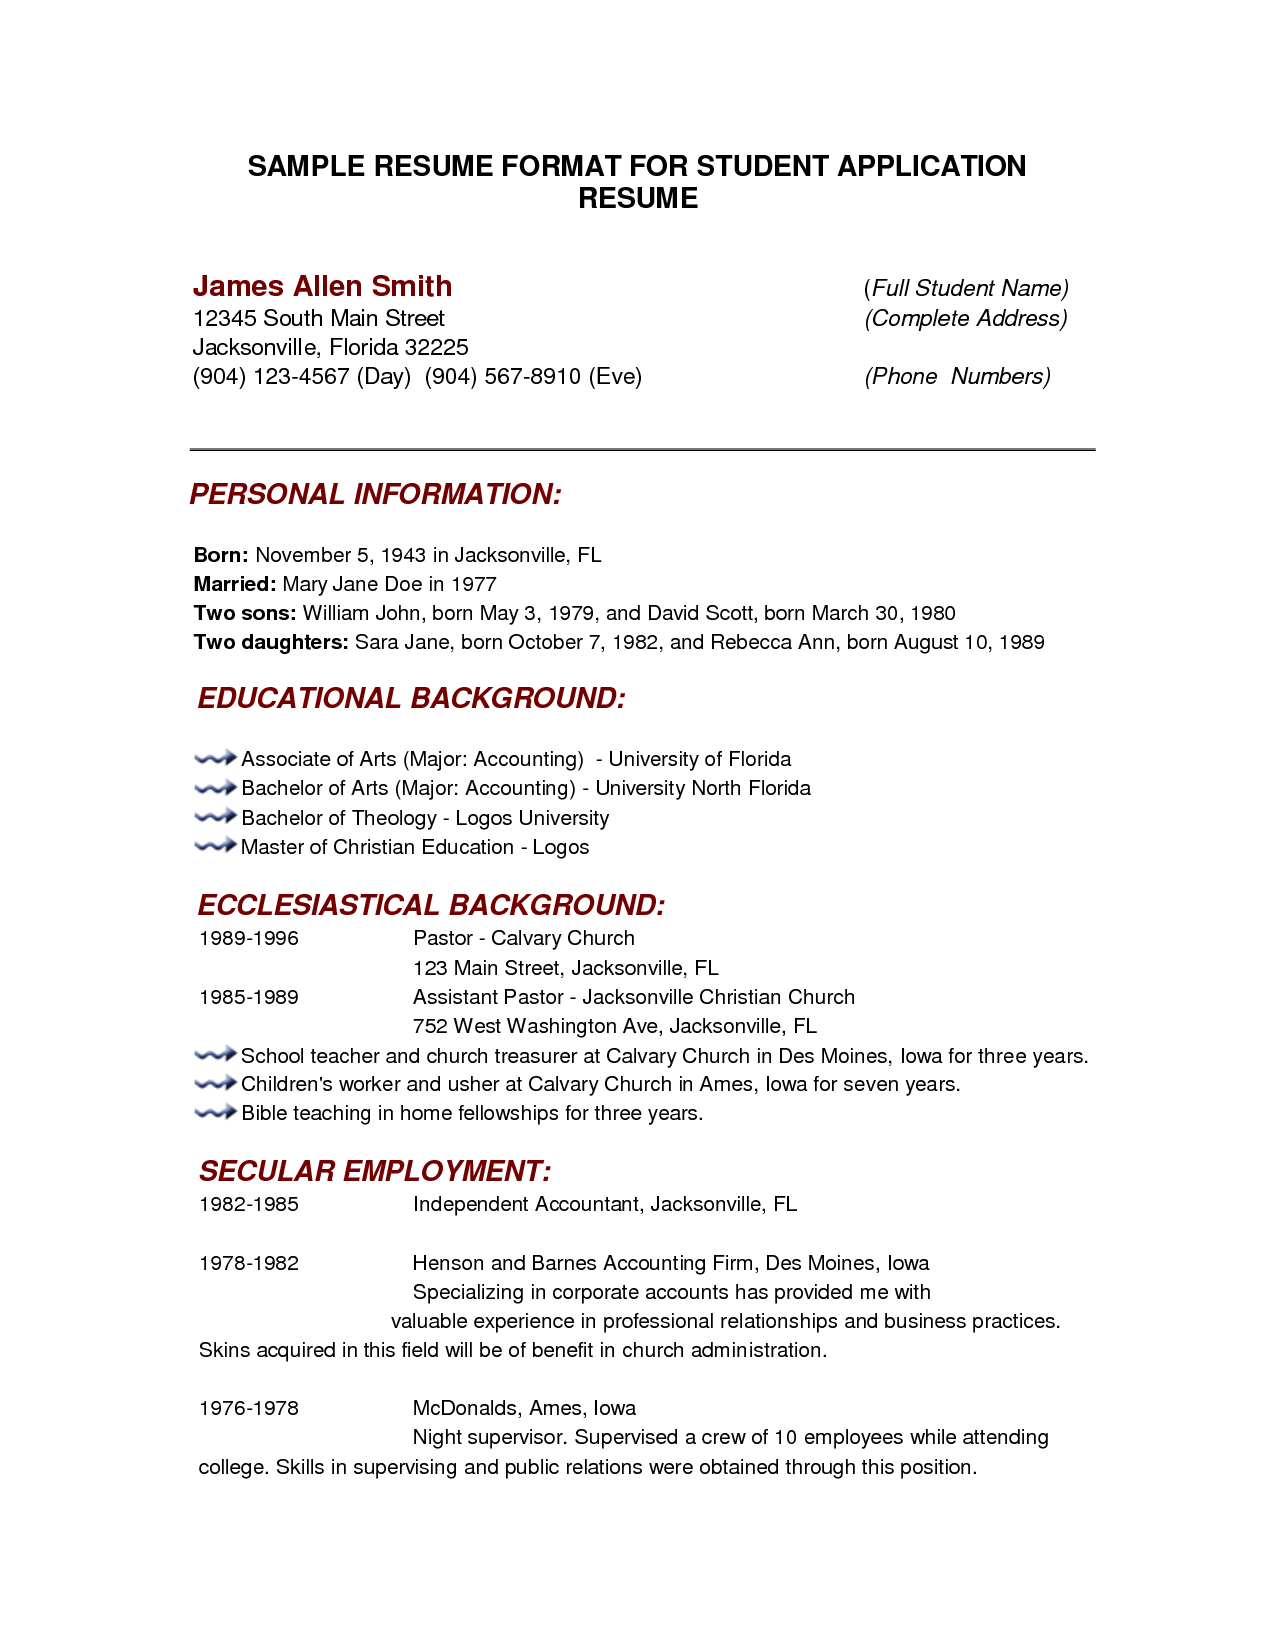 Resume Template High School Student High School Senior Resume For College Application  Google Search